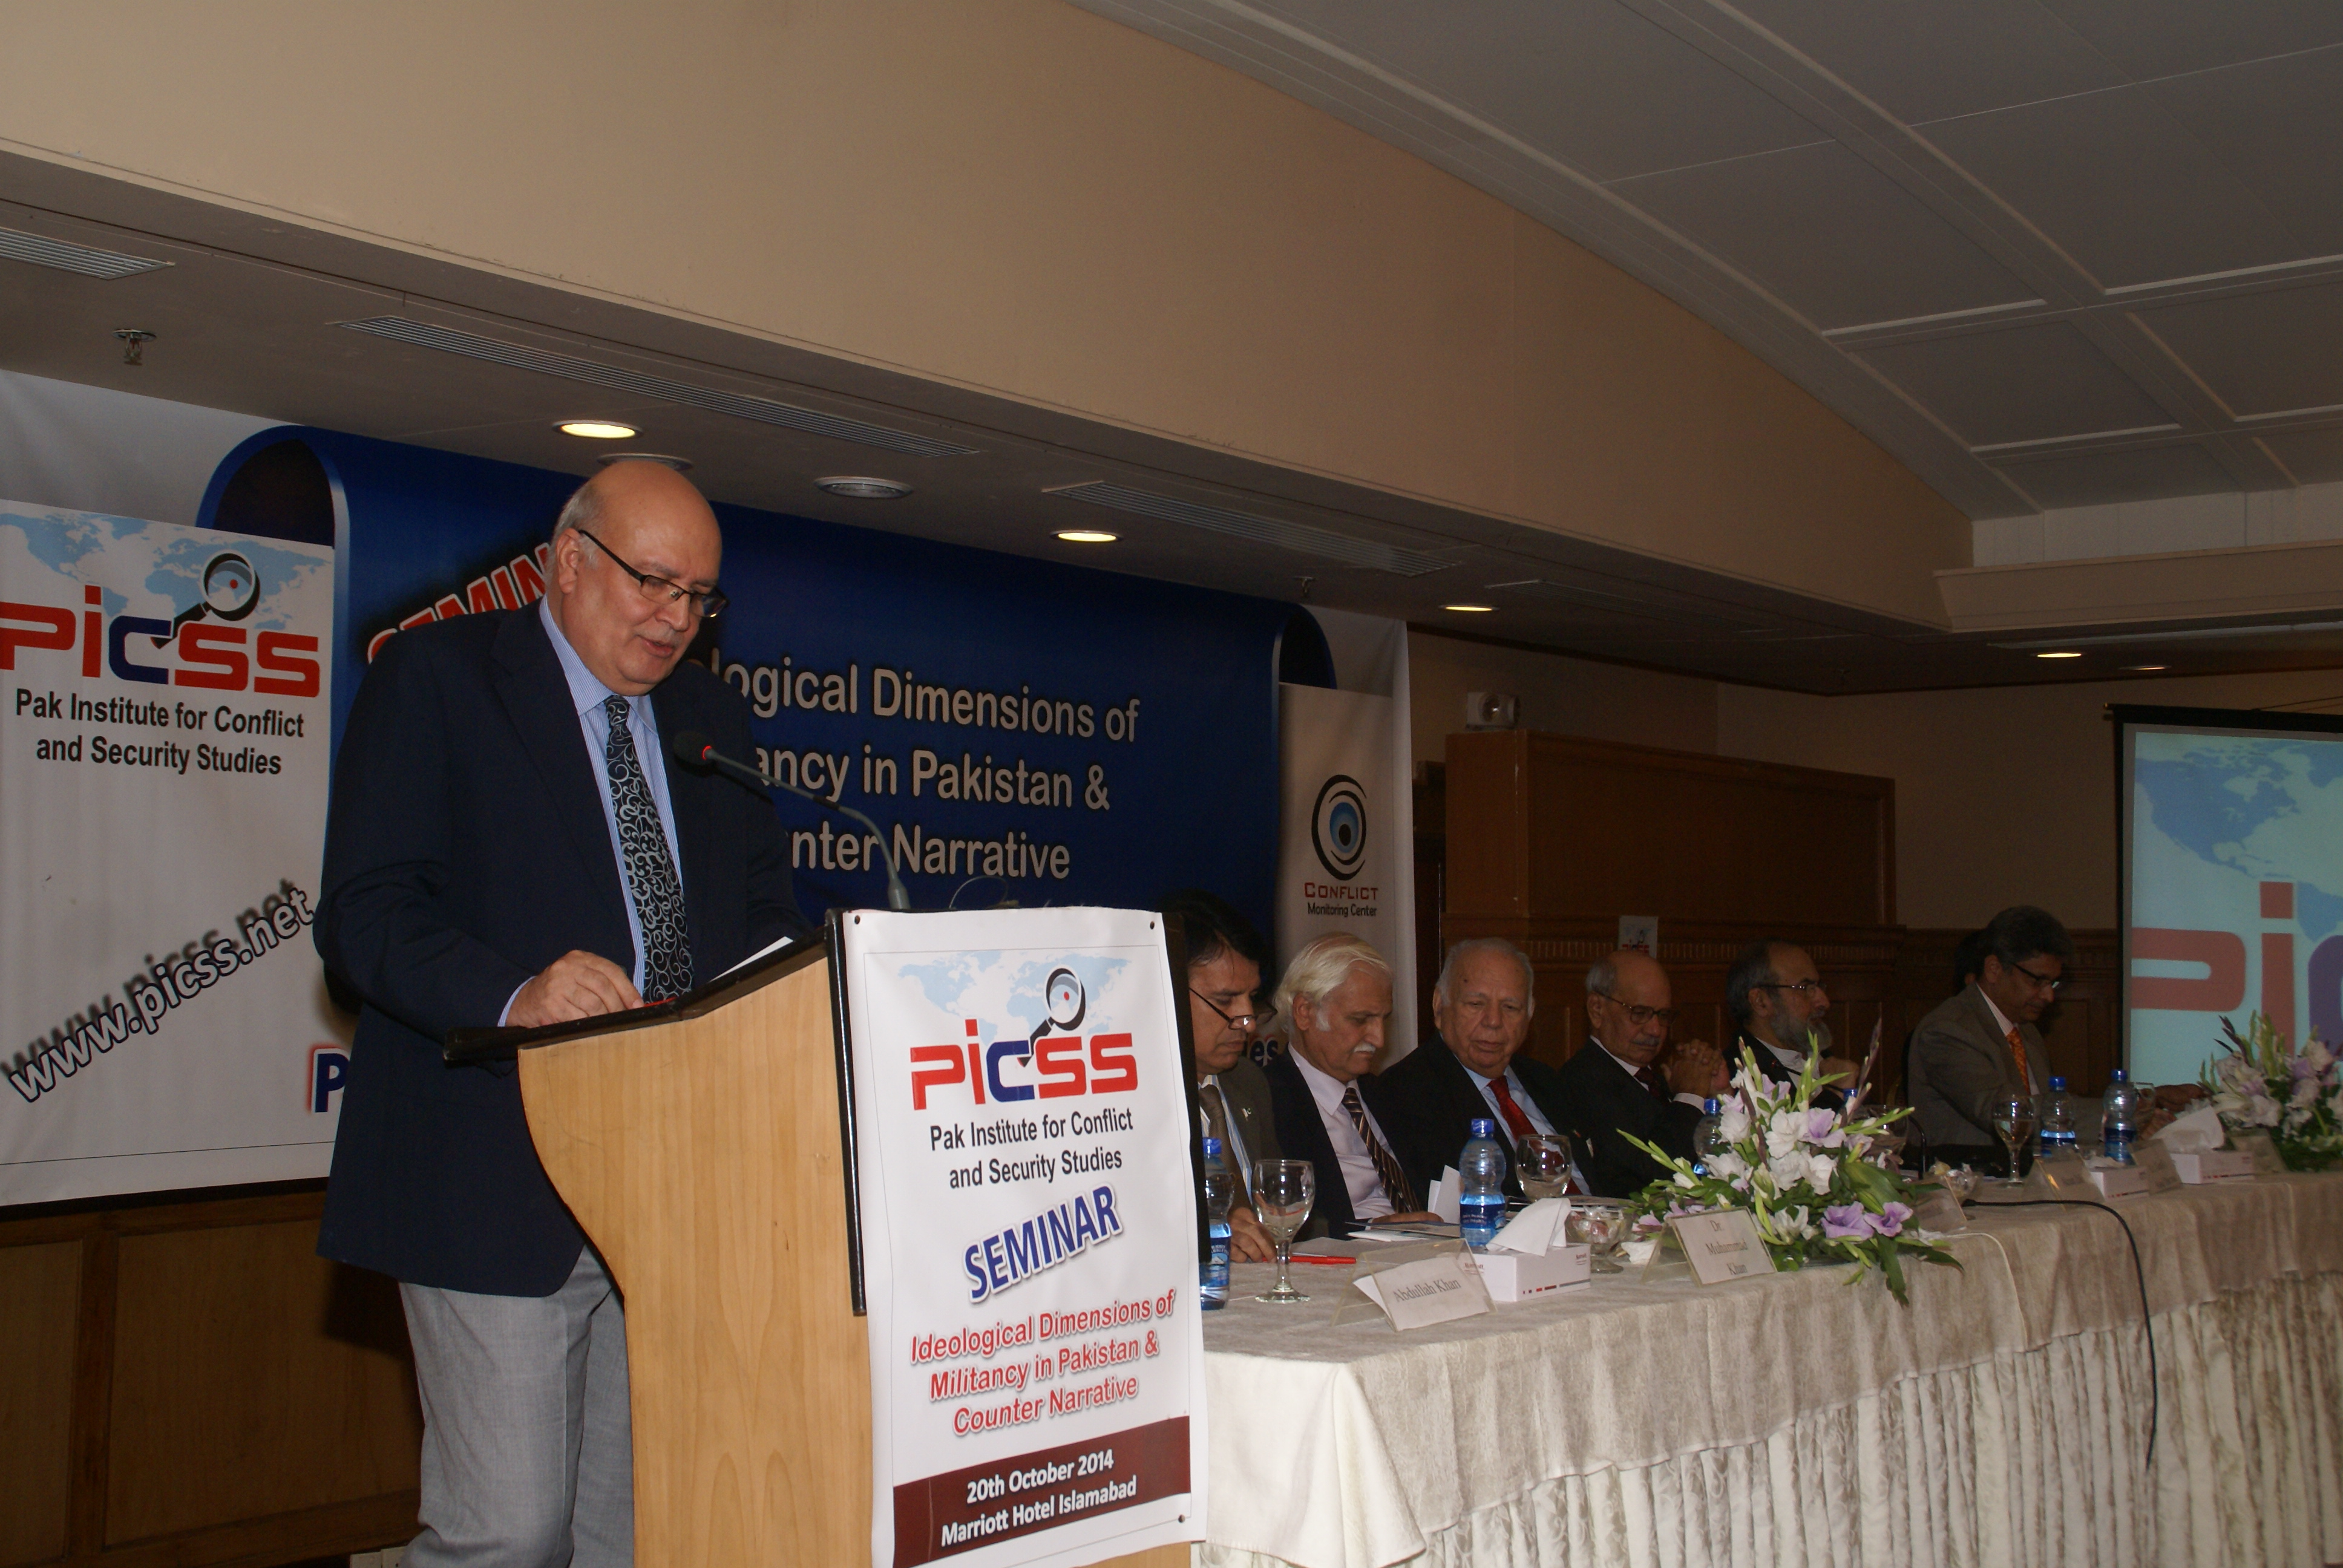 PICSS Seminar: Ideological Dimensions of Militancy in Pakistan and Counter Narrative